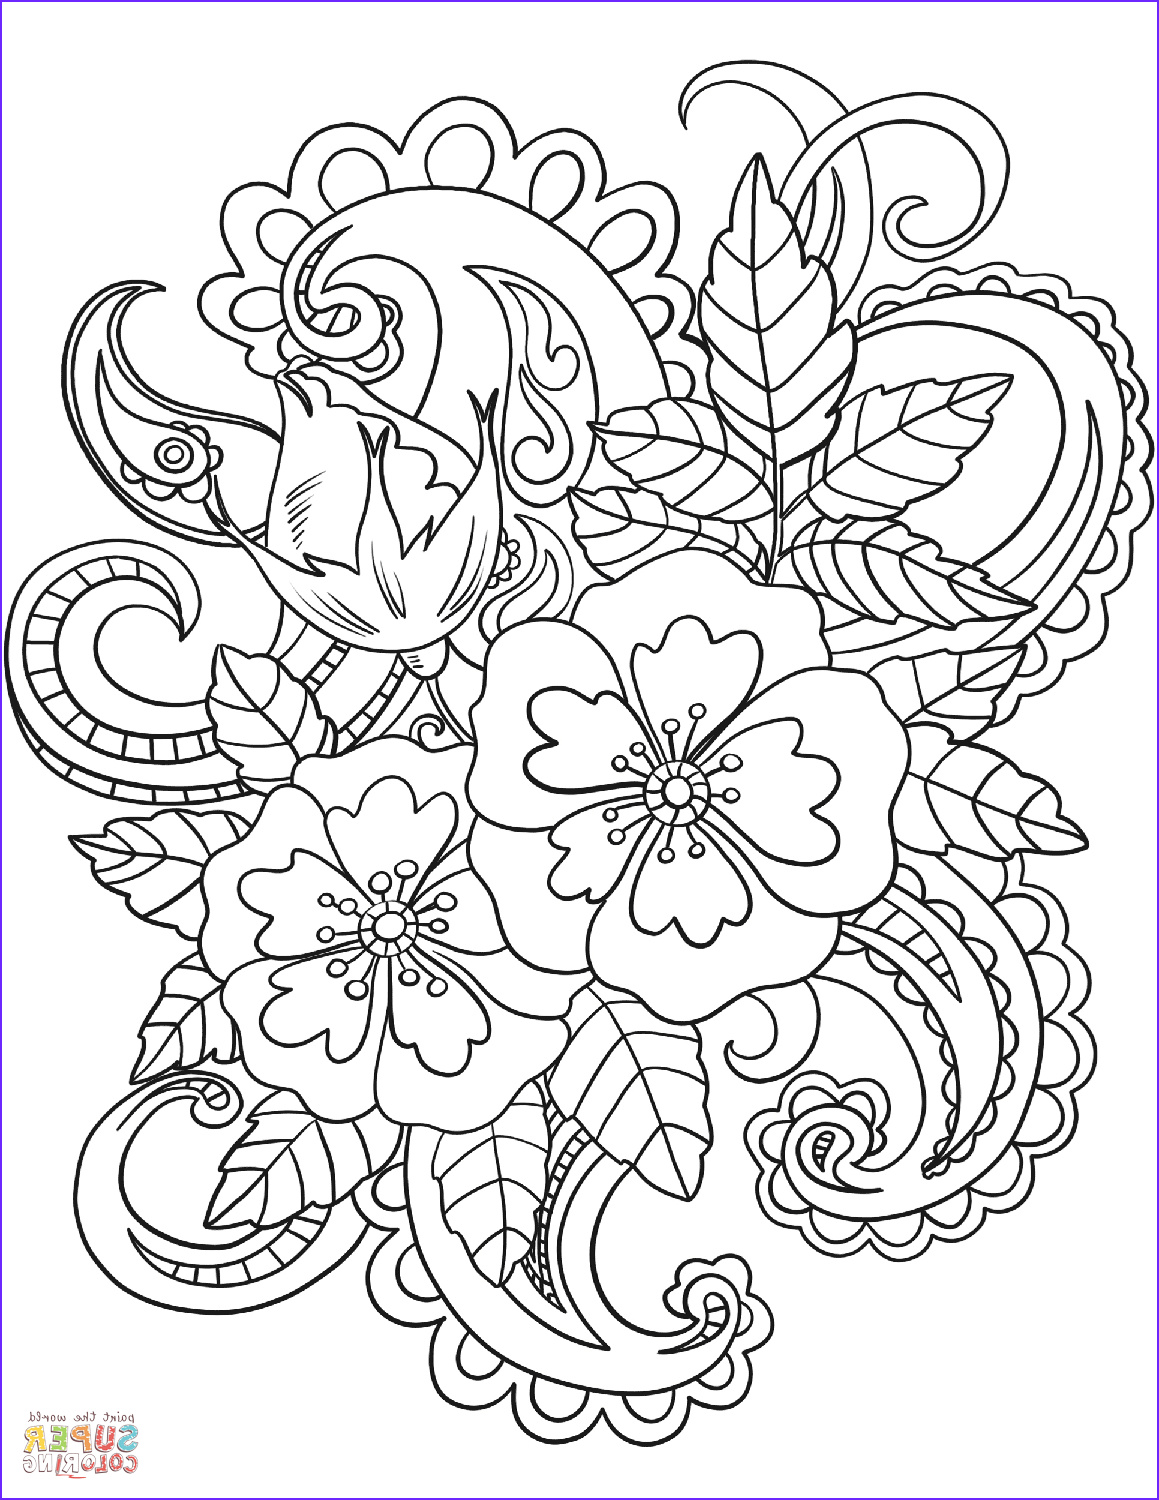 Coloring Design Pages Awesome Gallery Flowers with Paisley Patterns Coloring Page